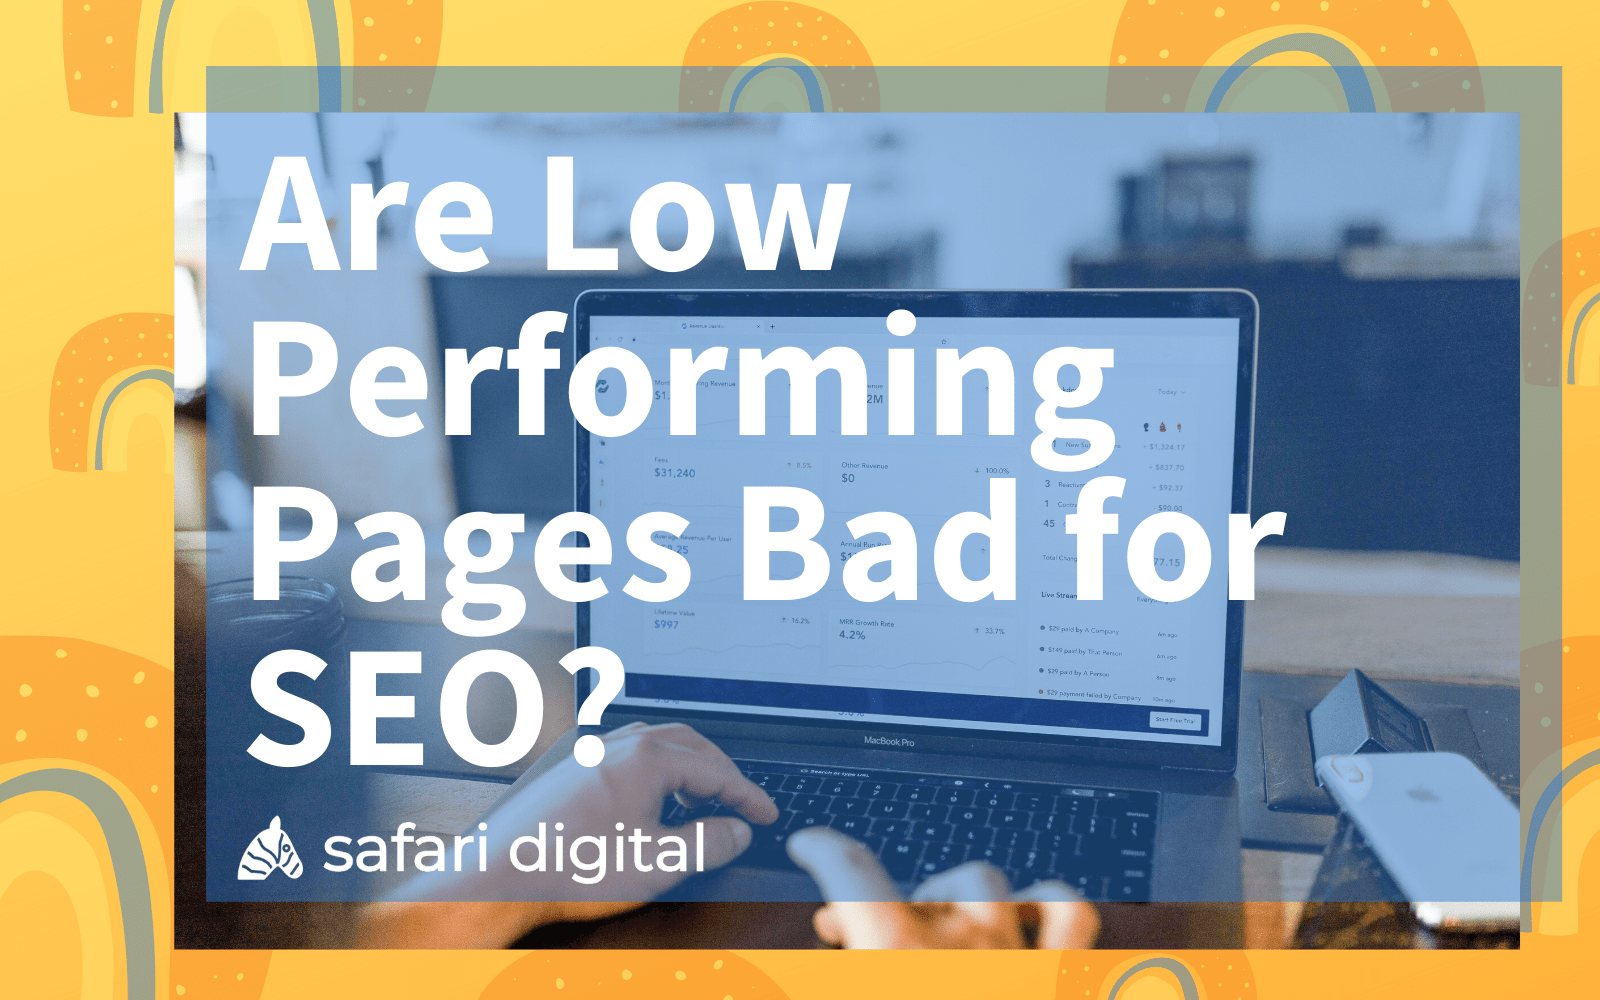 Are low performing pages bad for SEO?